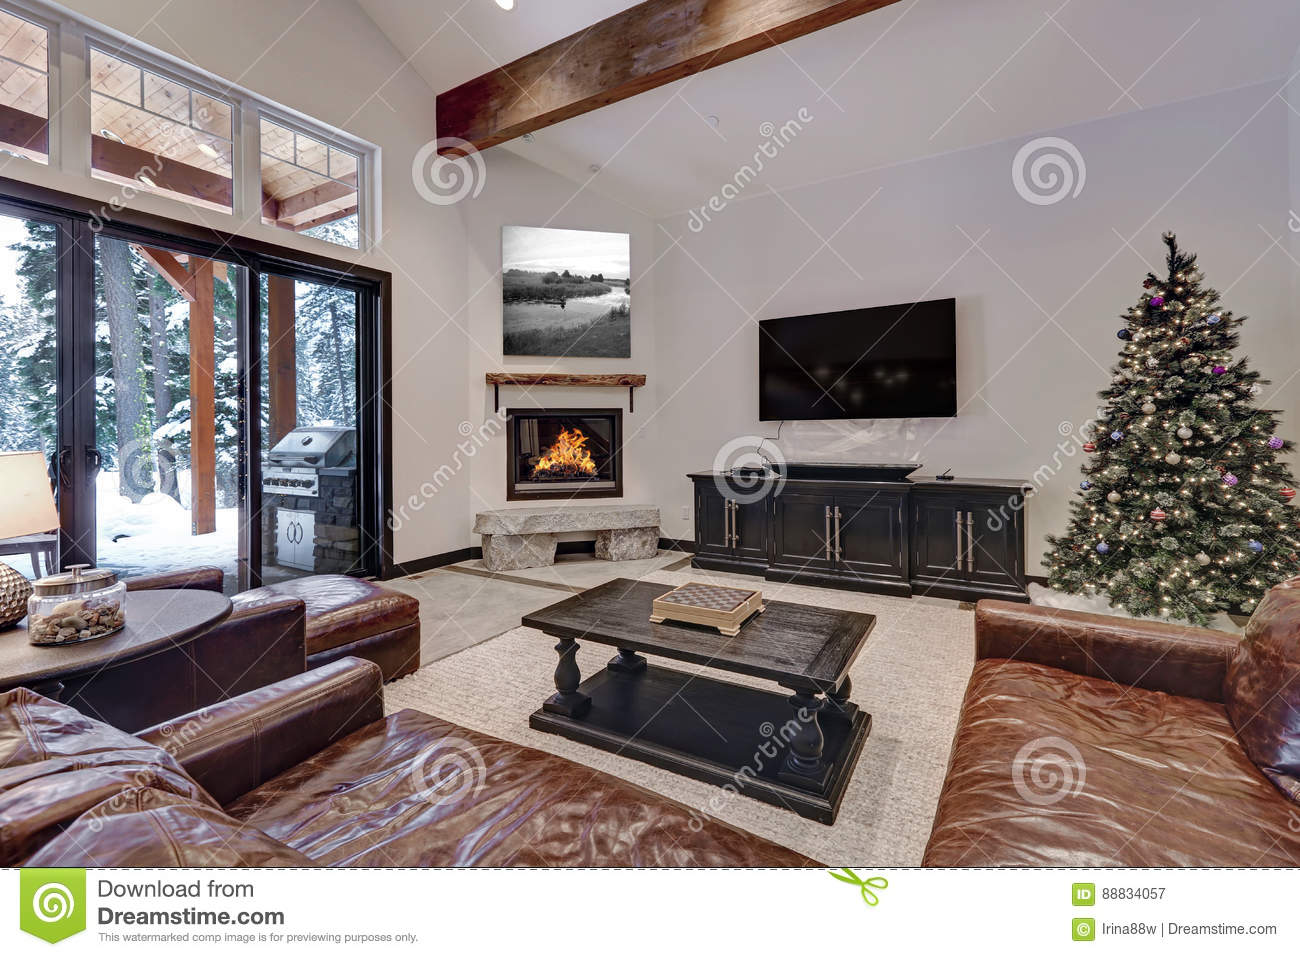 Vaulted Ceiling Living Room With Glass Sliding Doors To A Patio Stock Image Image Of Design Estate 88834057